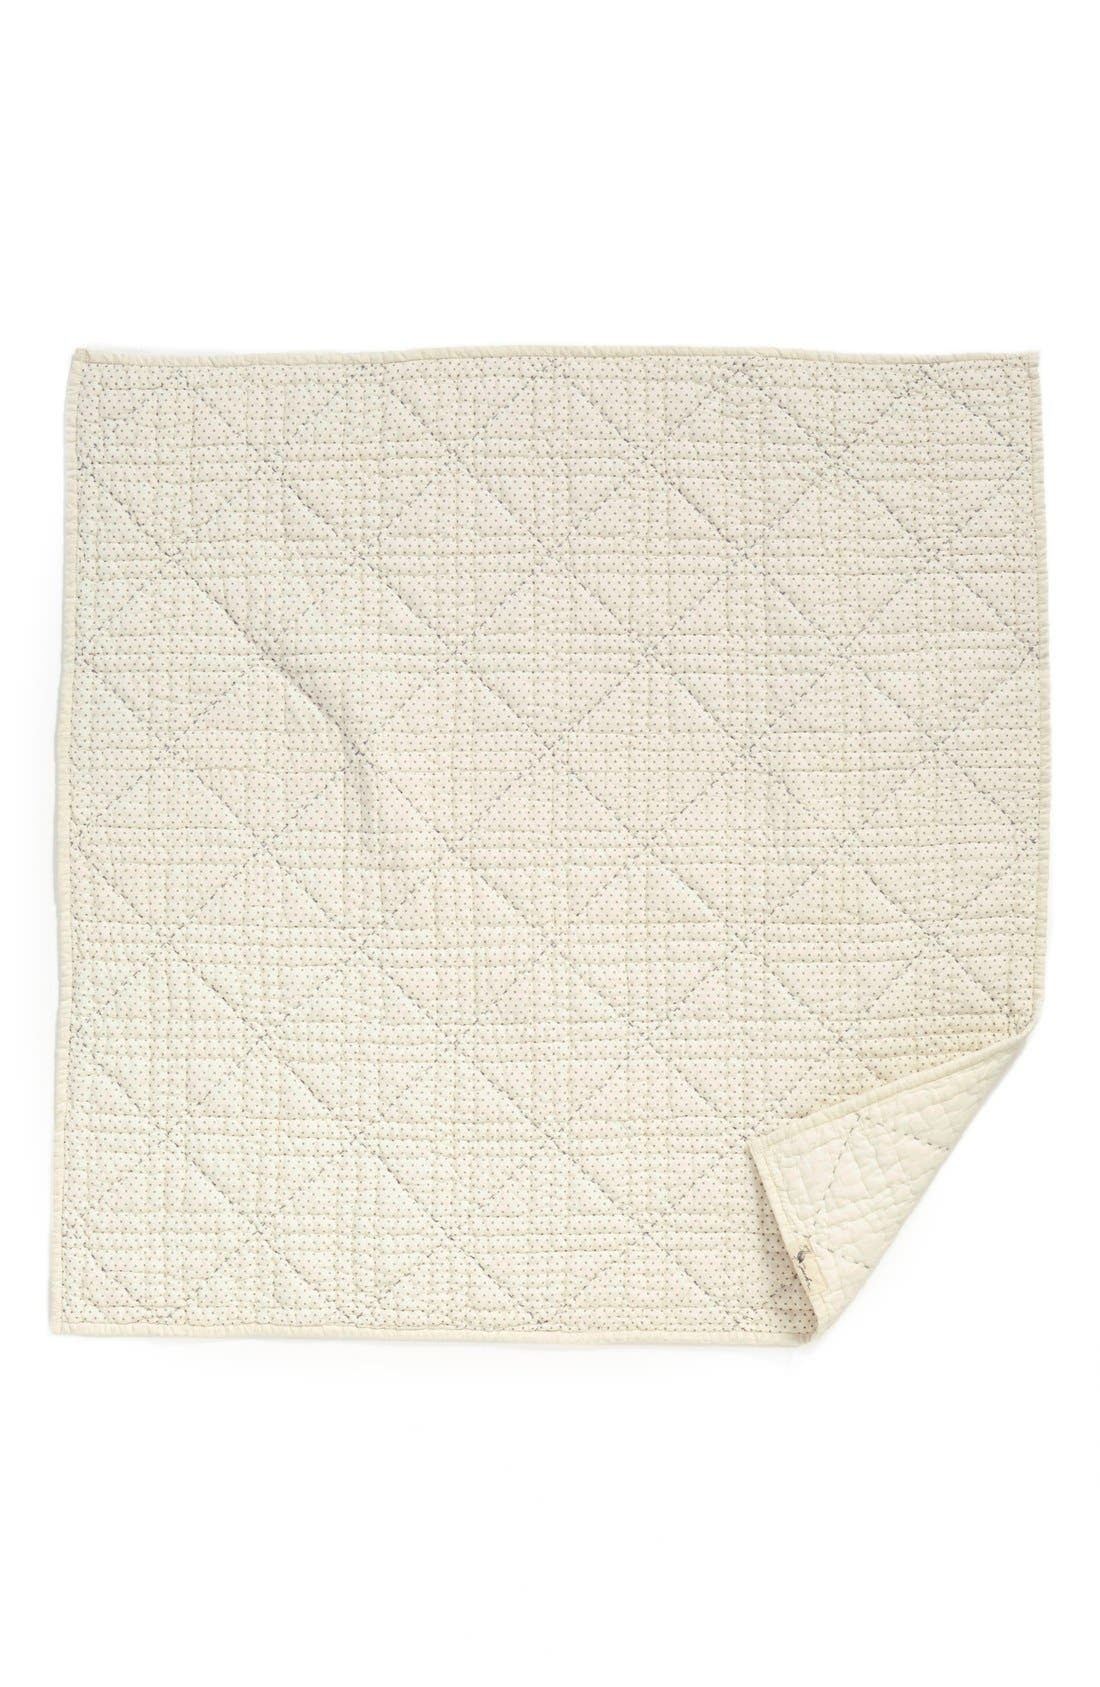 Stork Baby Blanket,                             Main thumbnail 1, color,                             020